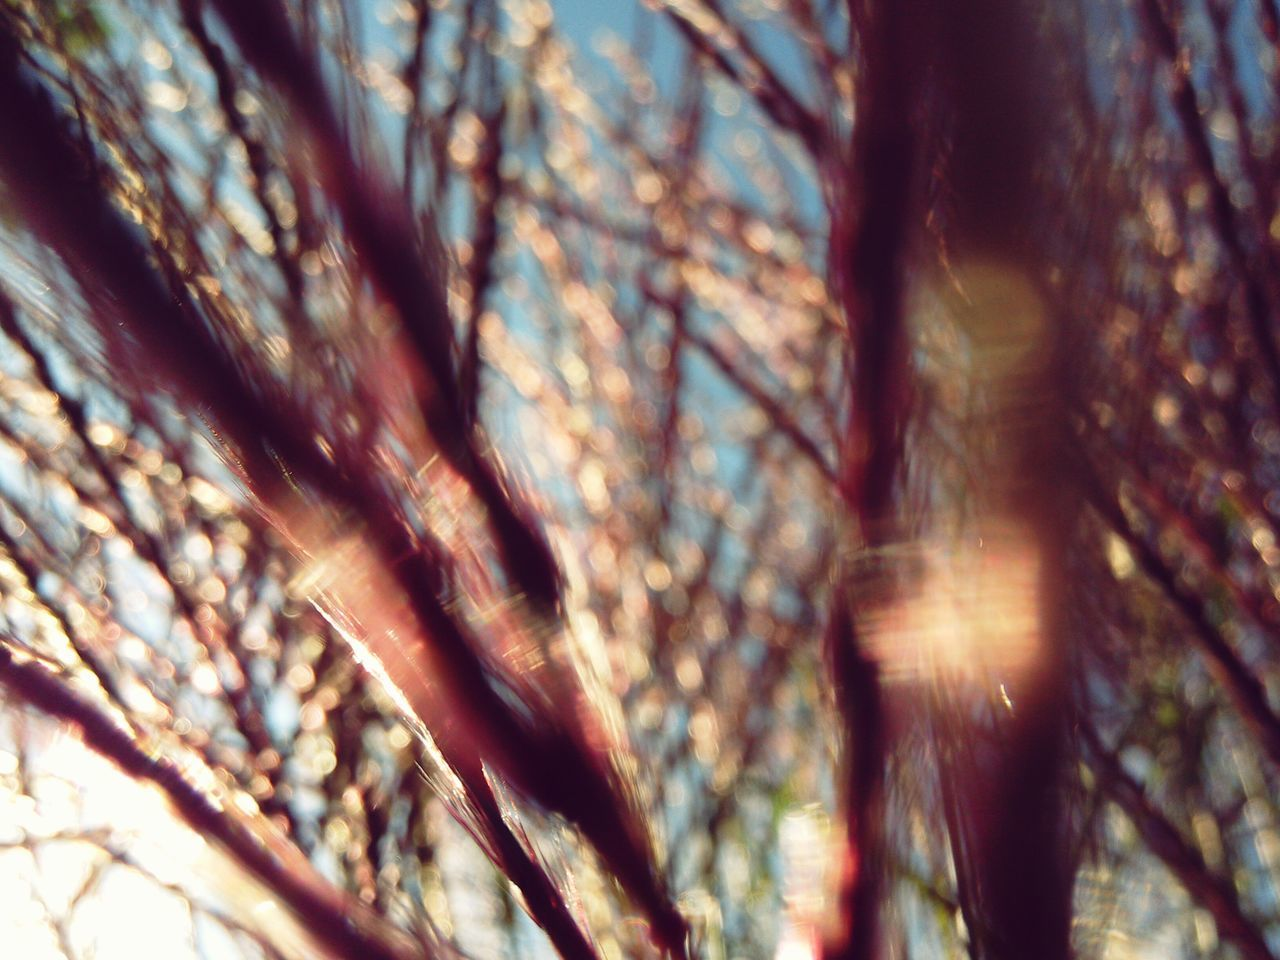 Backgrounds Grass Flowers Miscanthus Blur Pastel Colors Bokeh Nature Shades Sun Glare Abstract Pattern